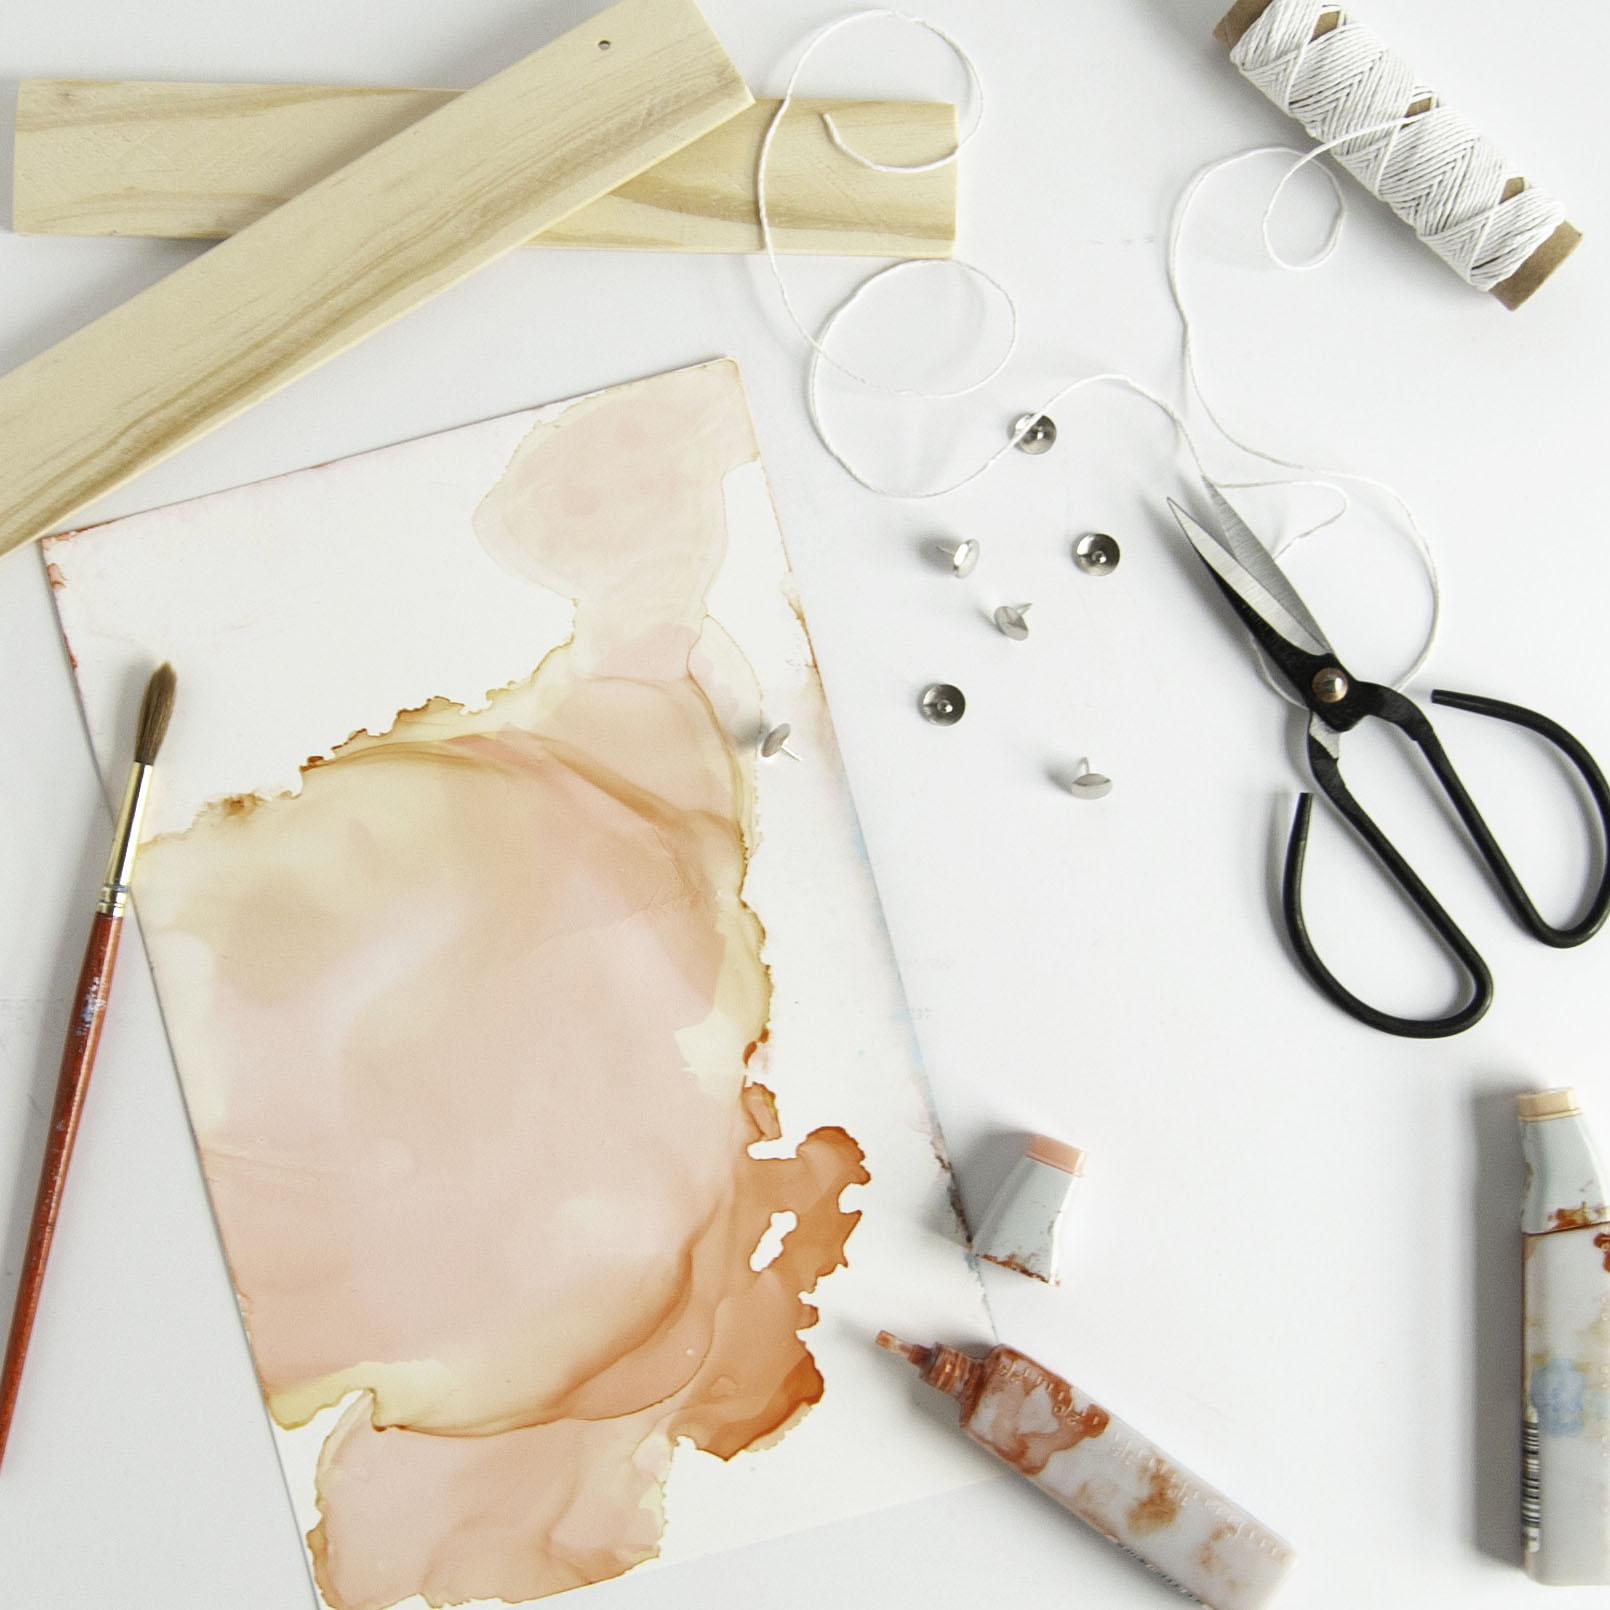 It can be nerve wracking to try a new craft project when you don't have the skill set or tools at your disposal. - At The Mad Makery, we break each project down step-by-step and will help you if you need it. By the end of your time with us, you'll definitely want to come back!